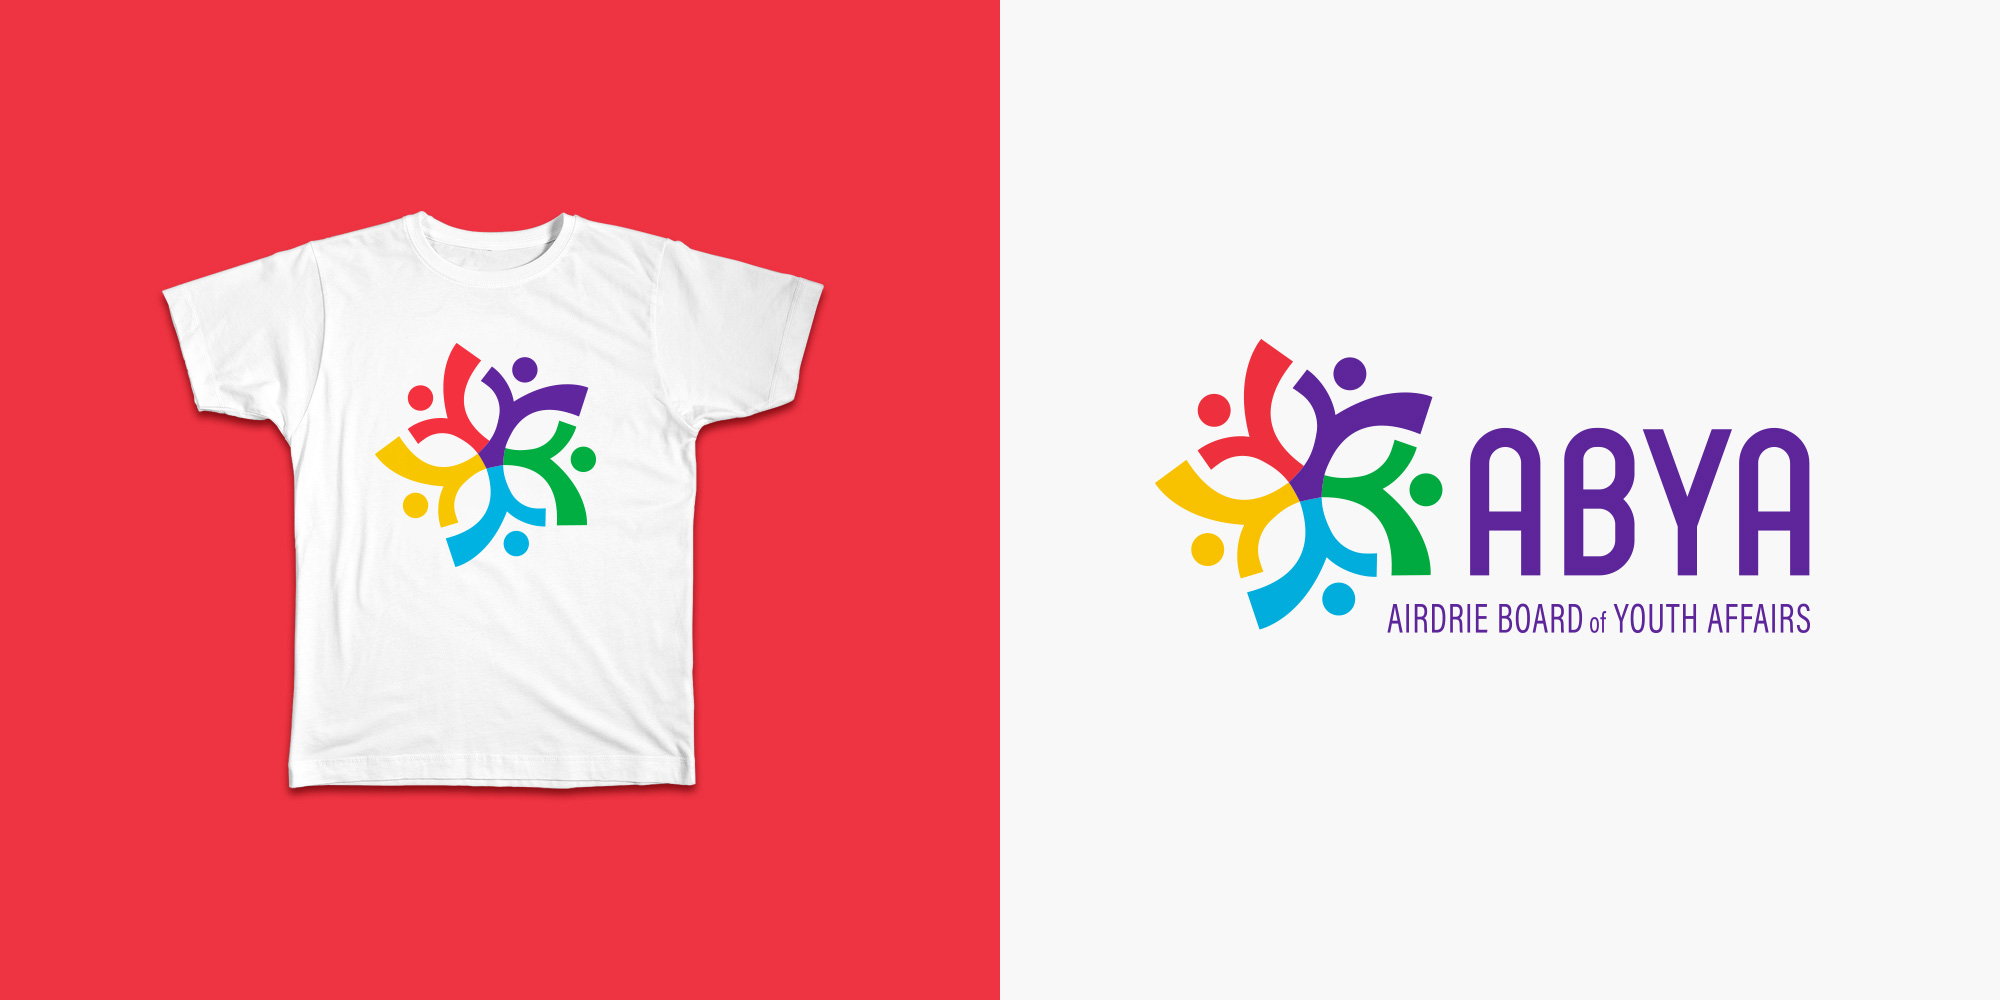 ABYA icon on a t-shirt and an alternative horizontal logo layout